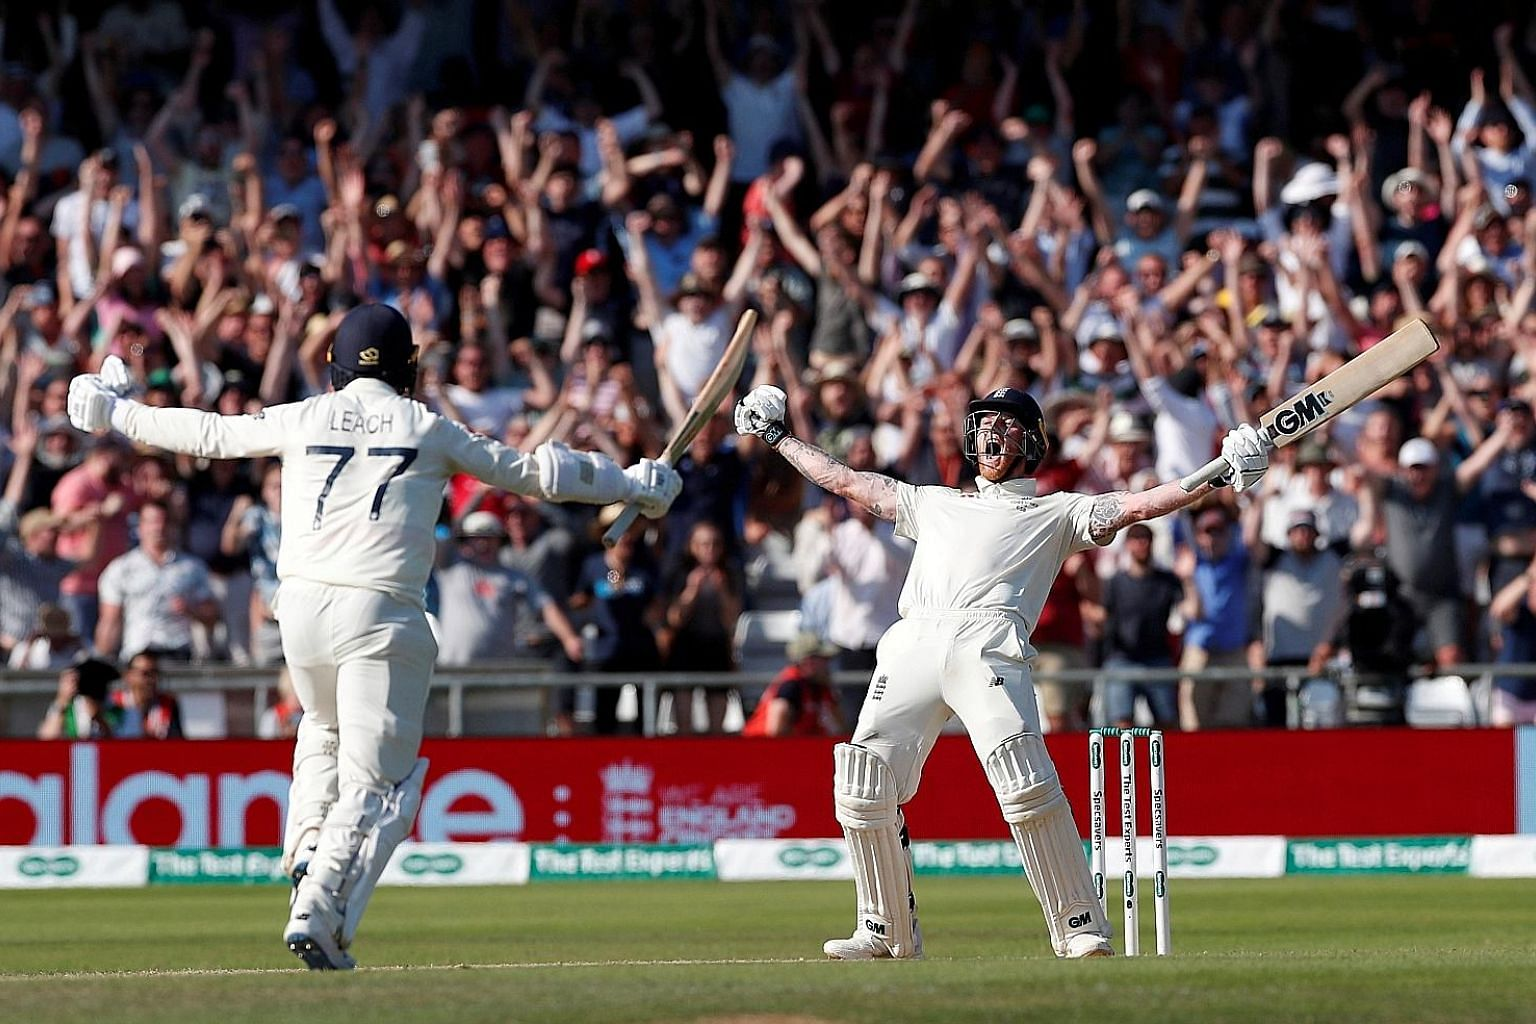 England's Ben Stokes screaming in delight after making the winning run in a last-wicket partnership with Jack Leach in the third Ashes Test against Australia at Headingley, Leeds, on Sunday. England won by one wicket. PHOTO: REUTERS